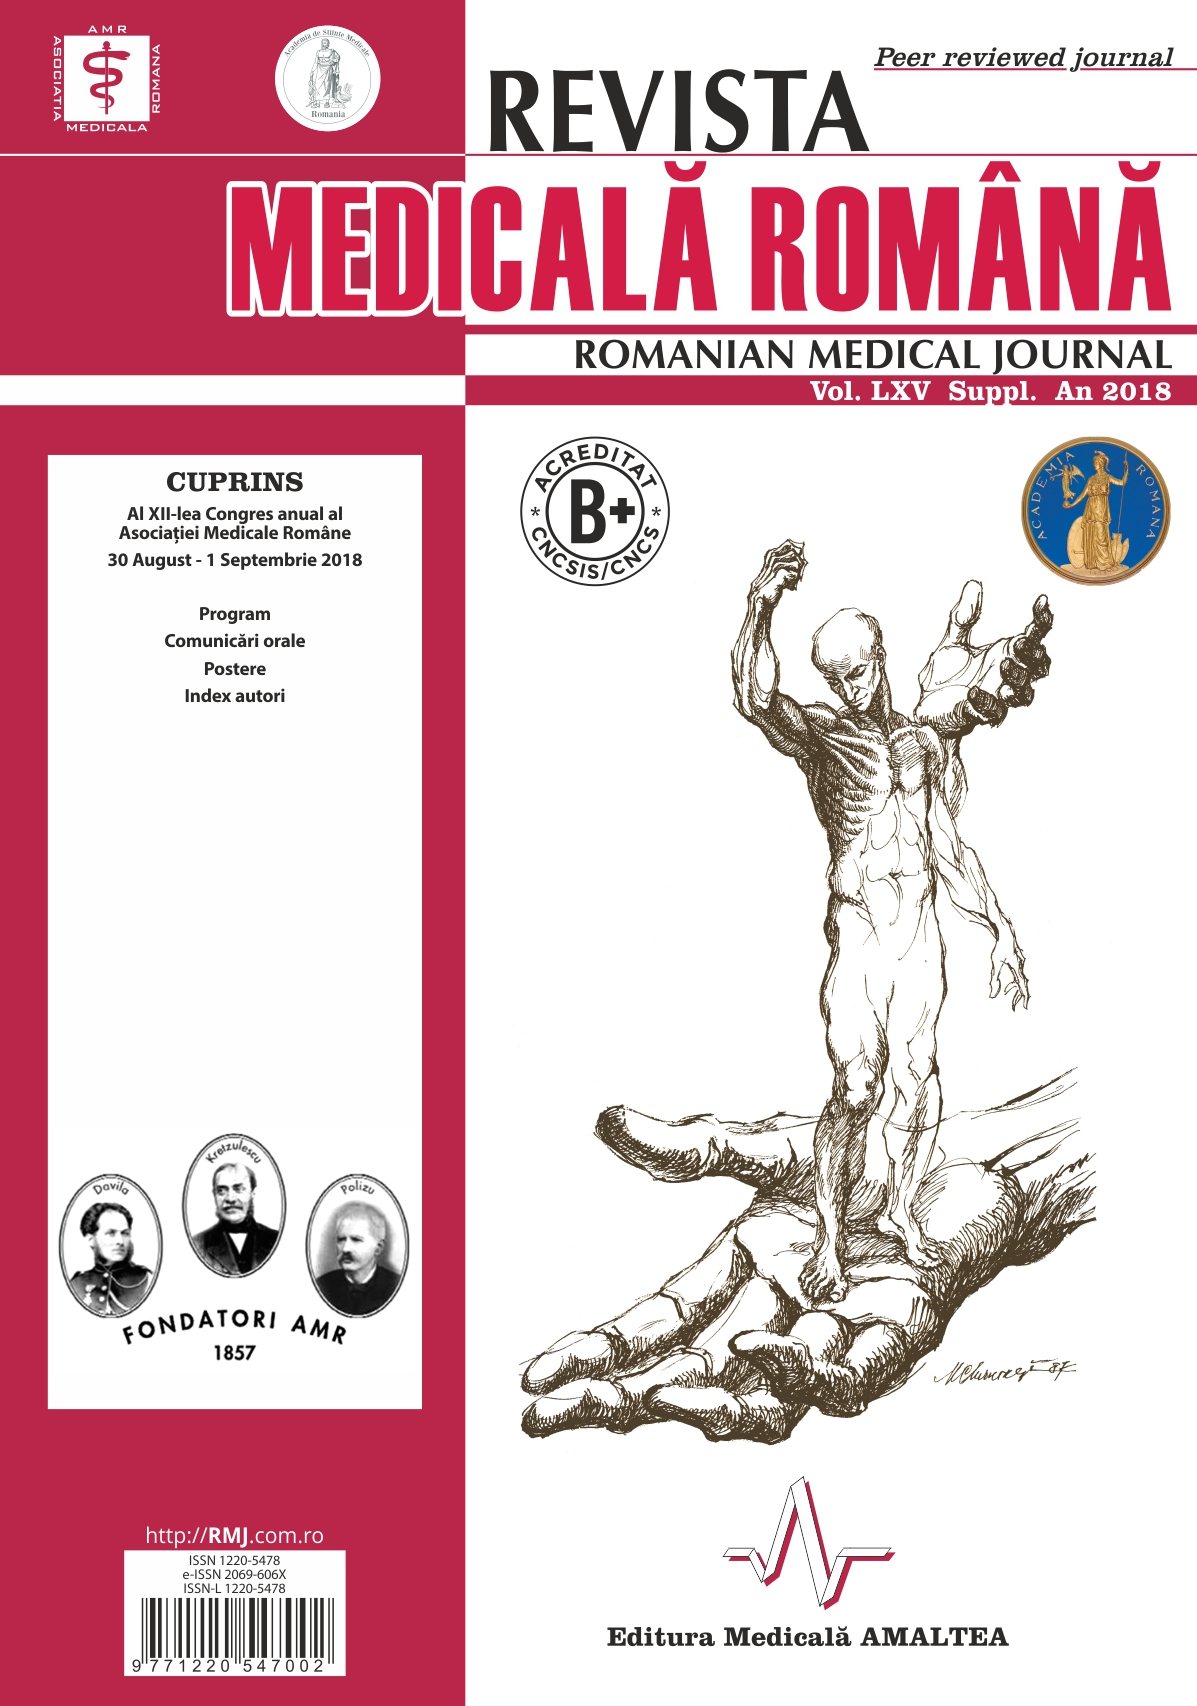 REVISTA MEDICALA ROMANA - Romanian Medical Journal, Vol. LXV, Nr. S, An 2018